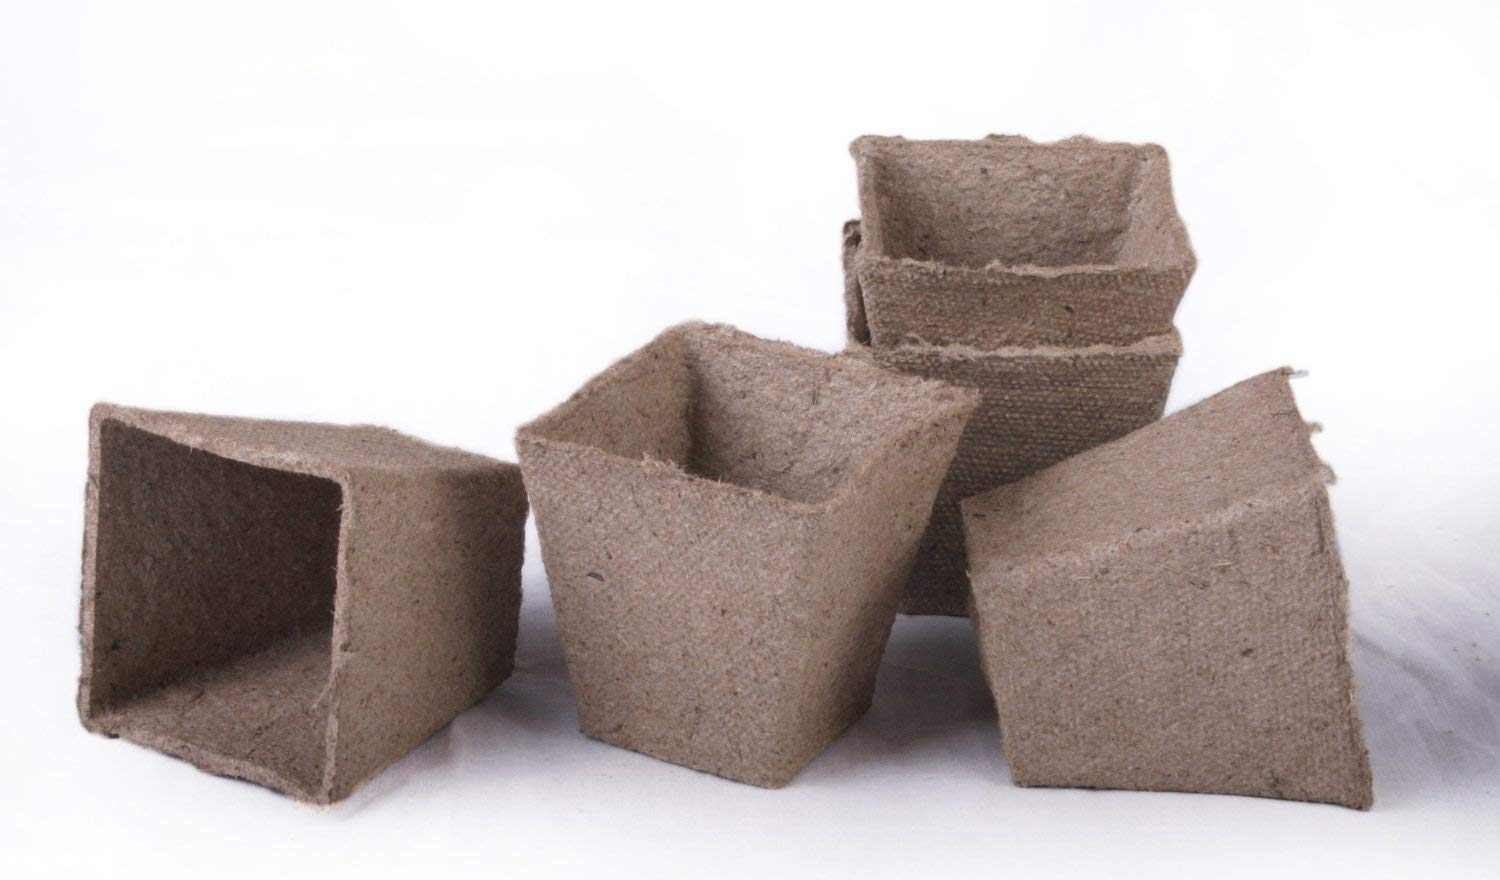 30 NEW Square Jiffy Peat Pots Size 3x3 ~ Pots Are 3 Inch Square At the Top and 3 Inch Deep.